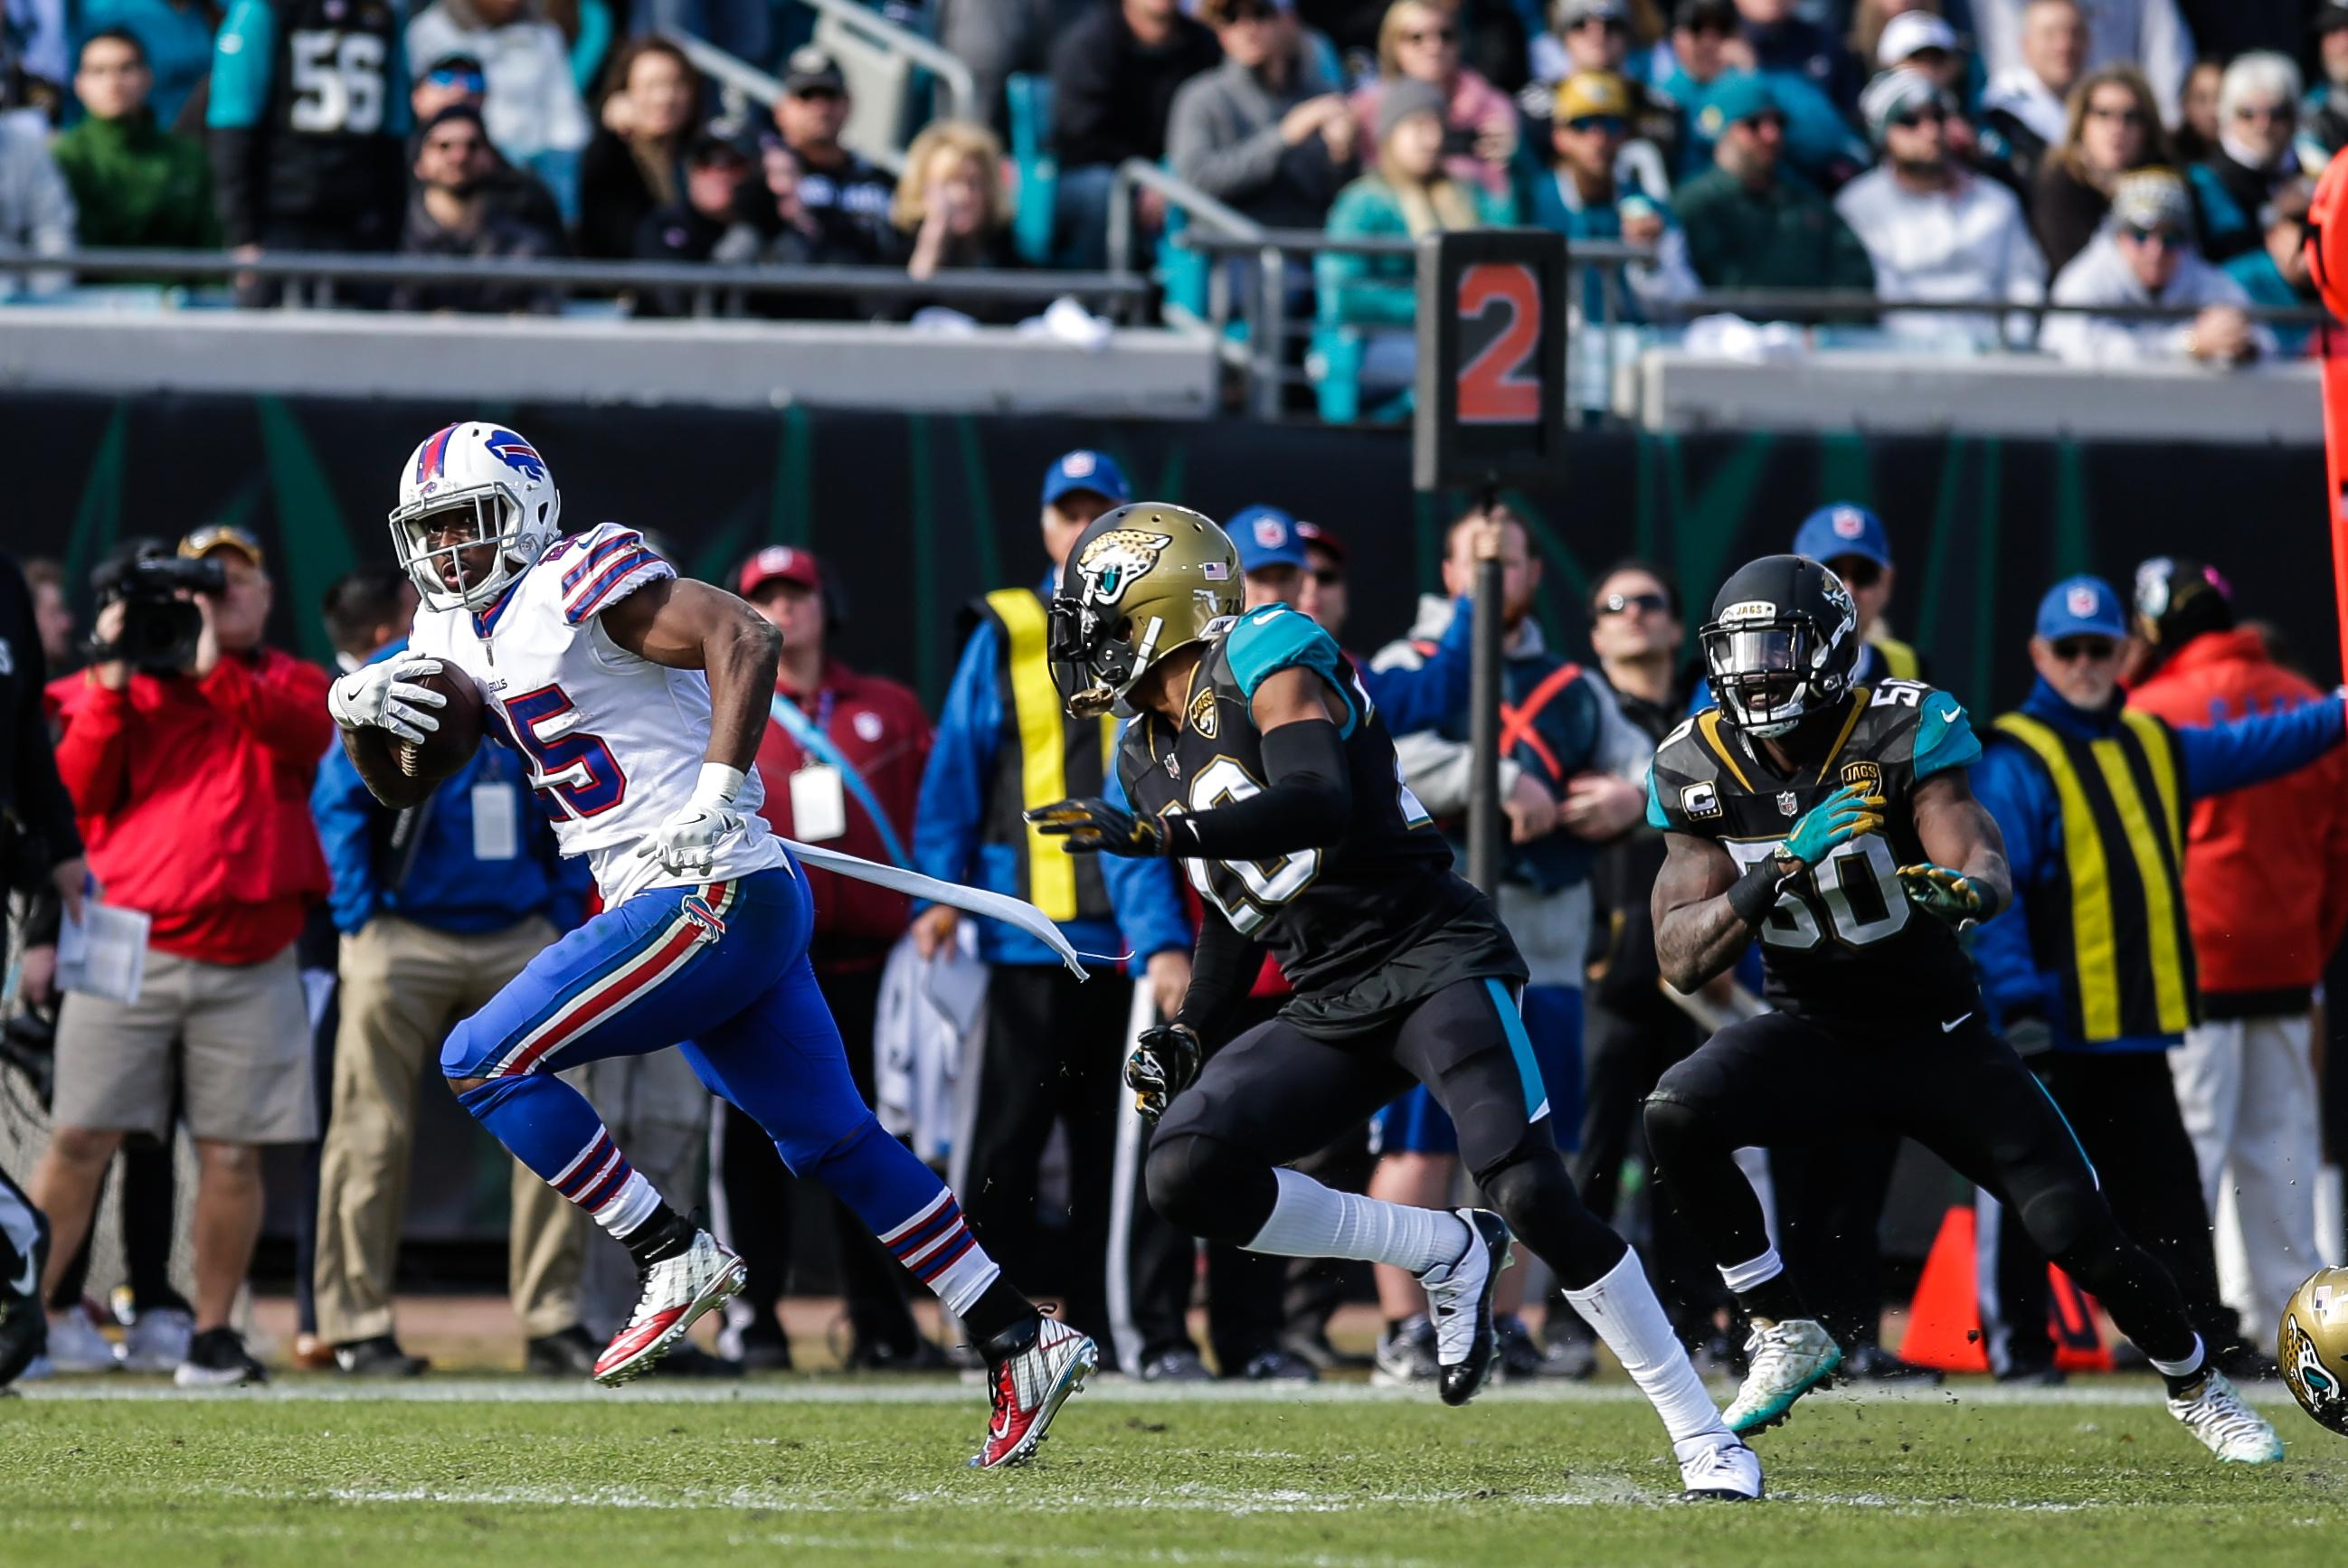 Can LeSean McCoy carry the load for the Bills in 2018? [Video]